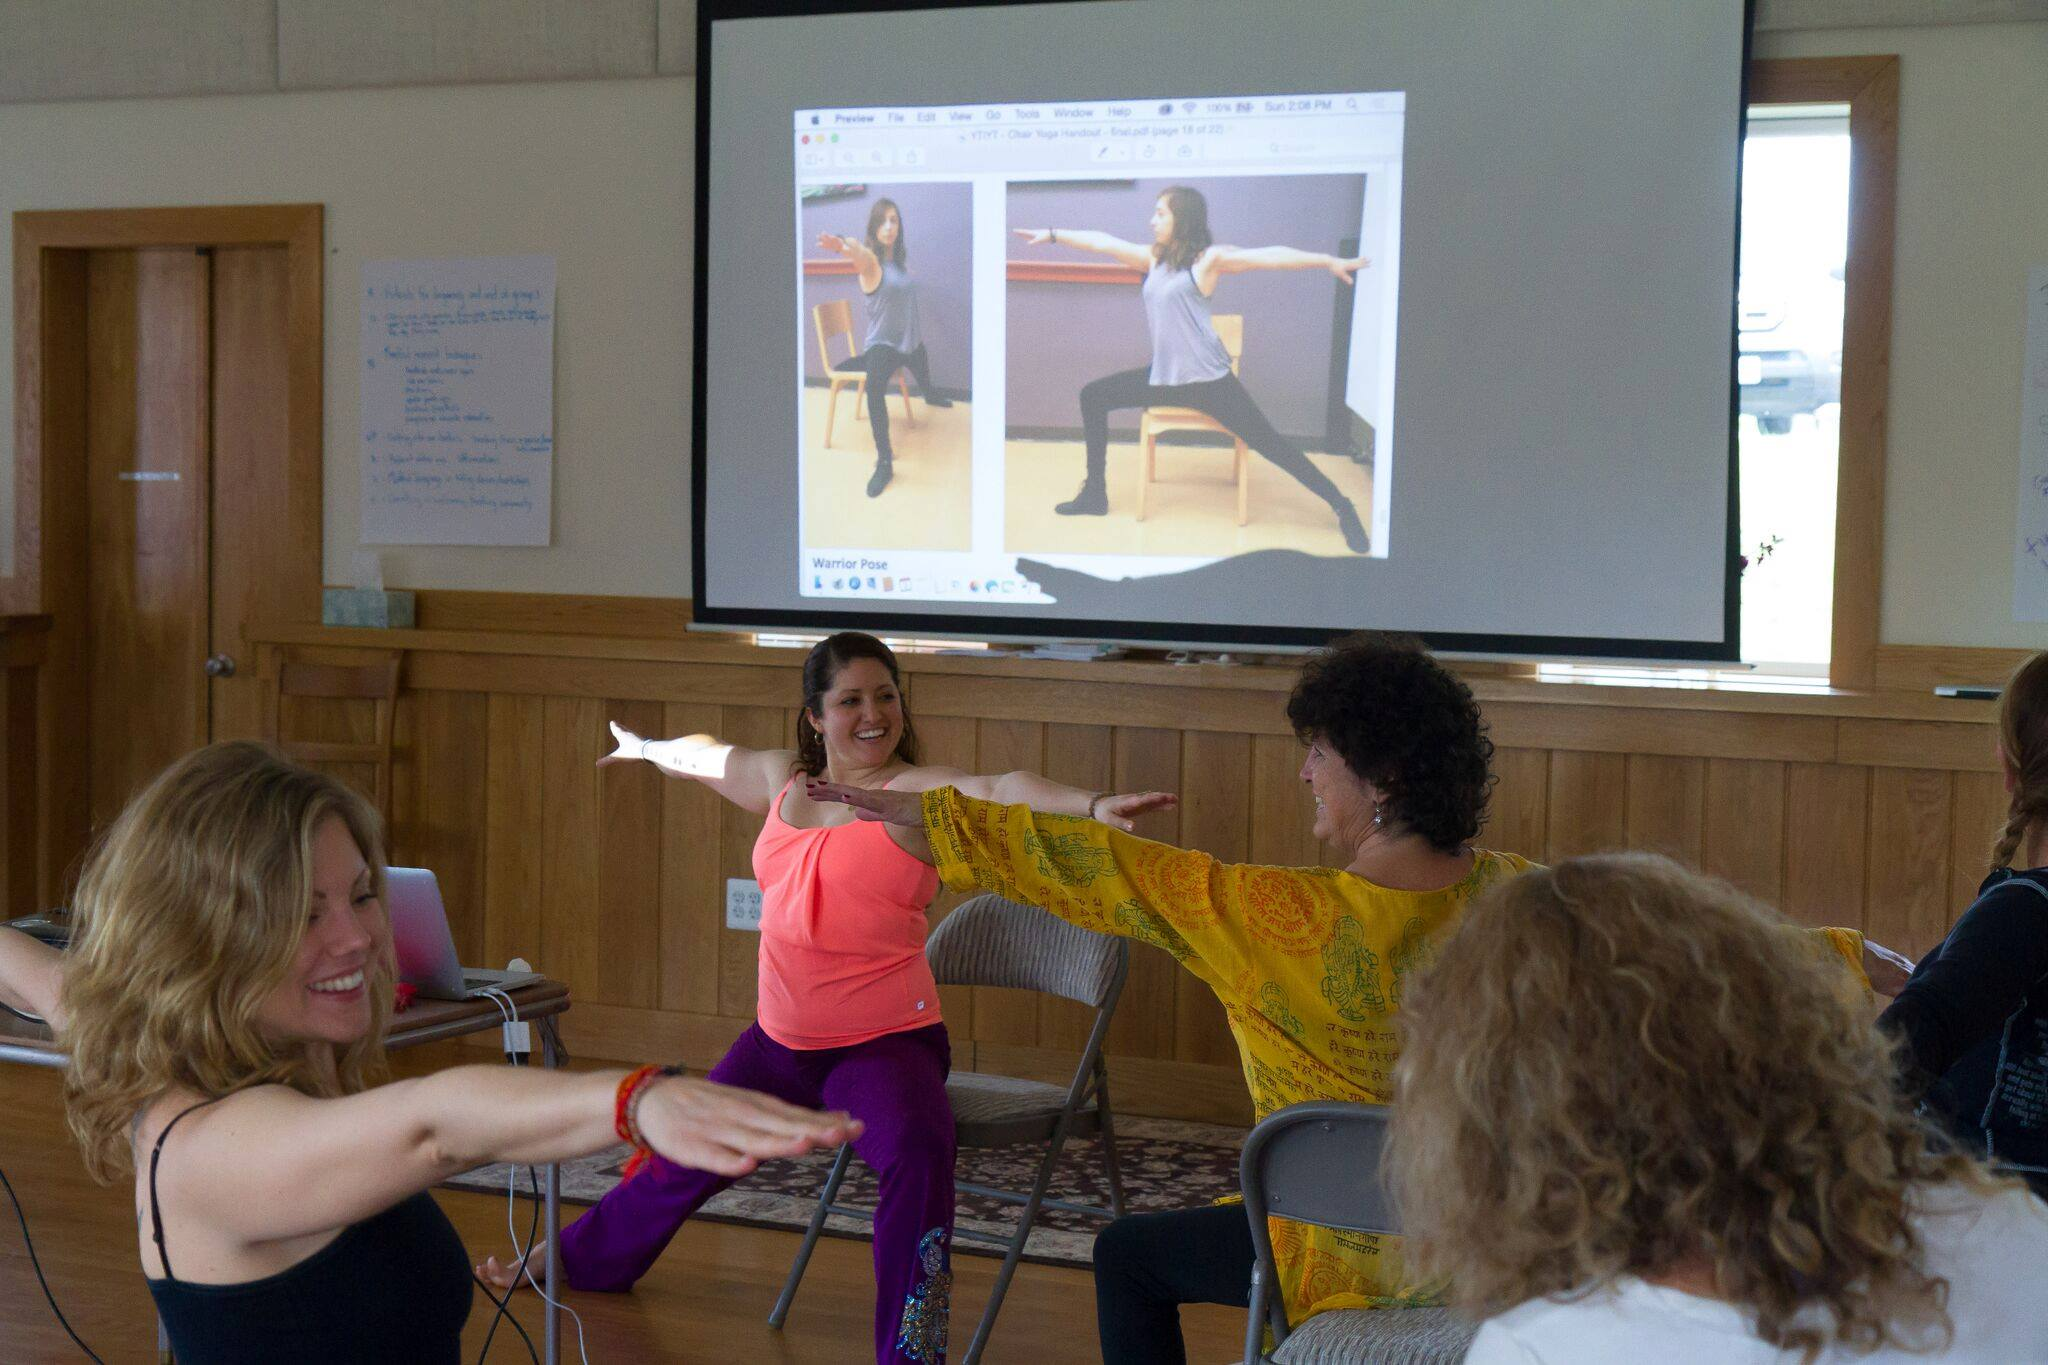 Kristen Townsend teaches details of chair yoga. Great practice for groups or individual clients.